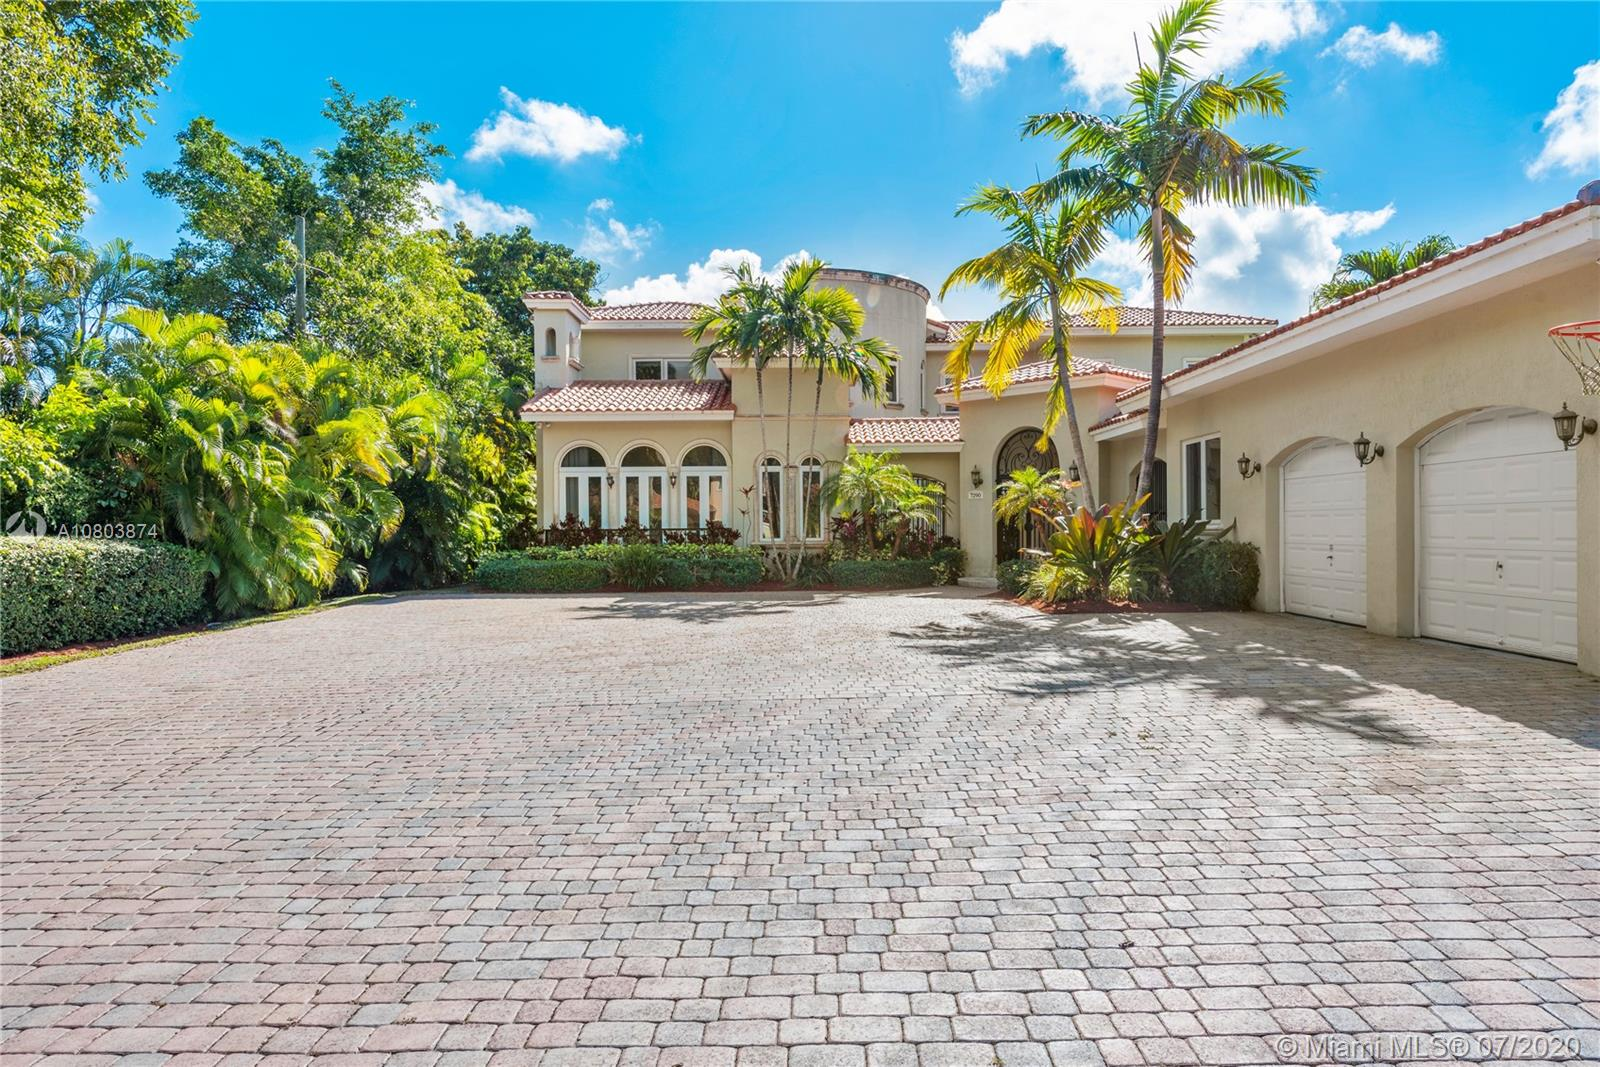 7290 SW 104th St, Coral Gables, Florida